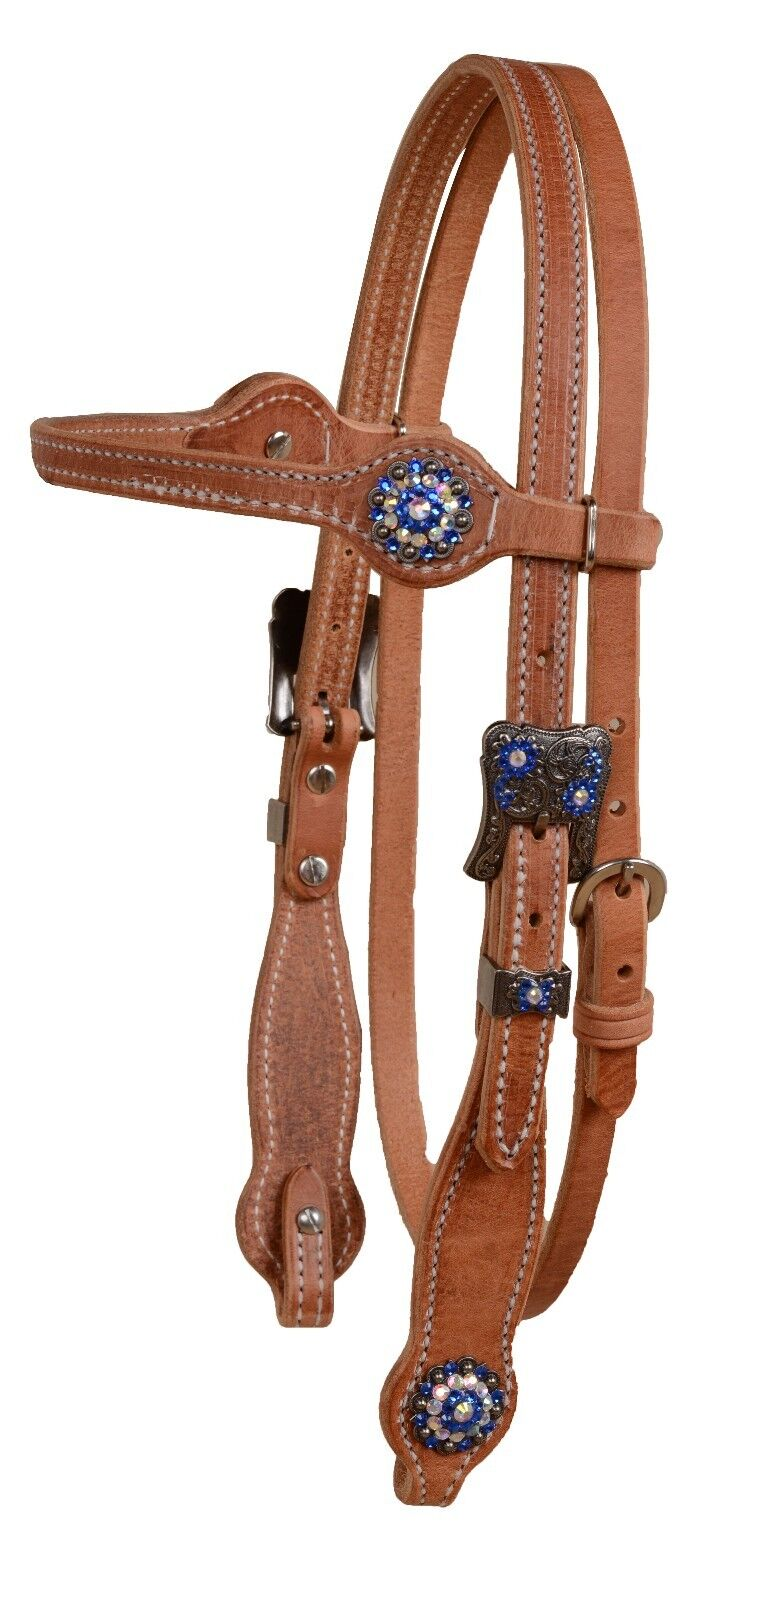 Harness leather browband bridle headstall bluee crystal cowgirl classic USA H385